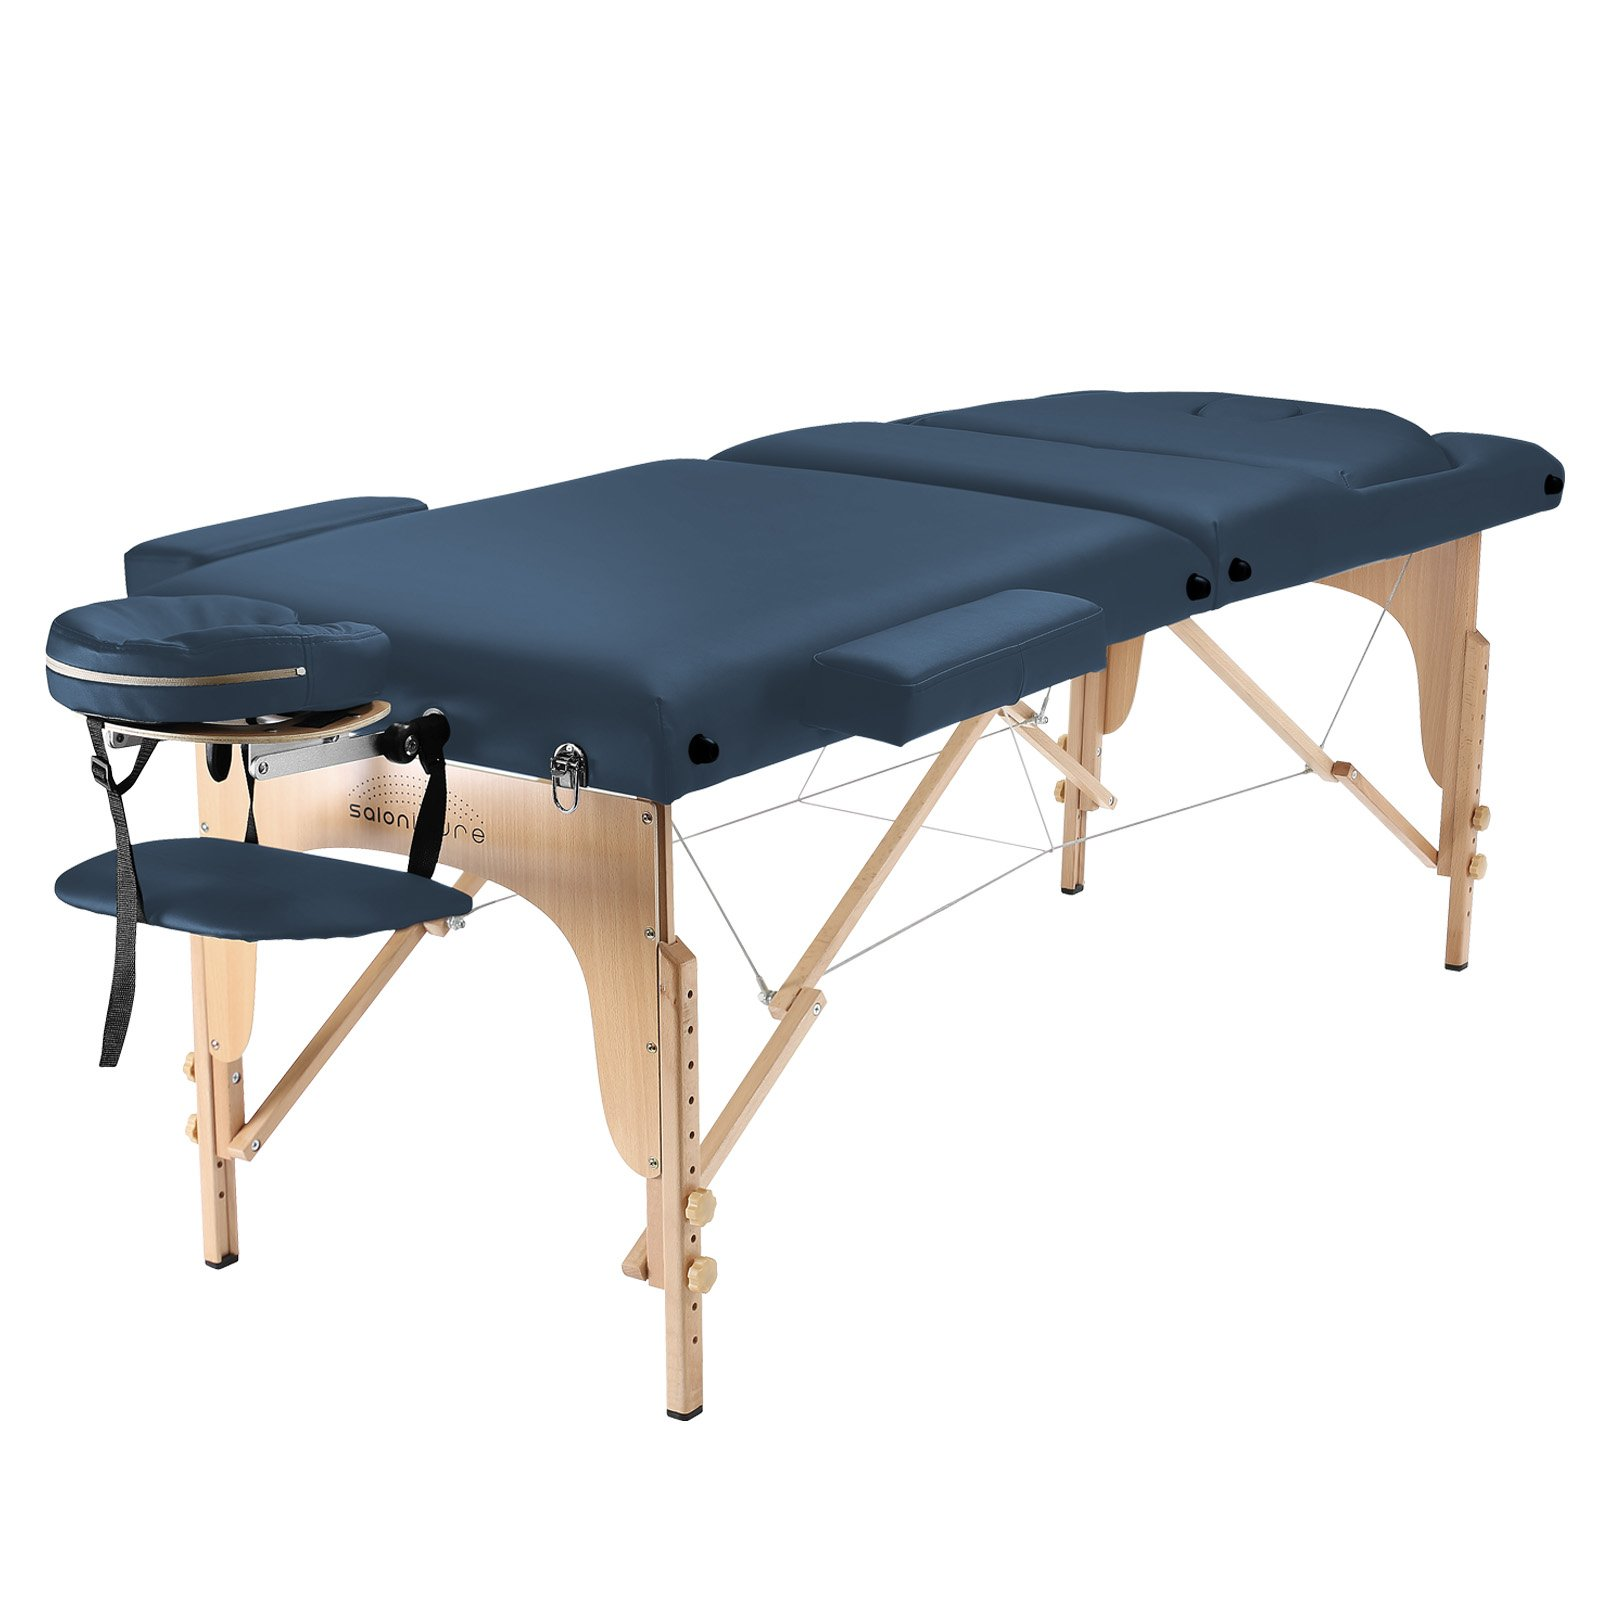 Saloniture Professional Portable Massage Table with Backrest - Blue by Saloniture (Image #2)